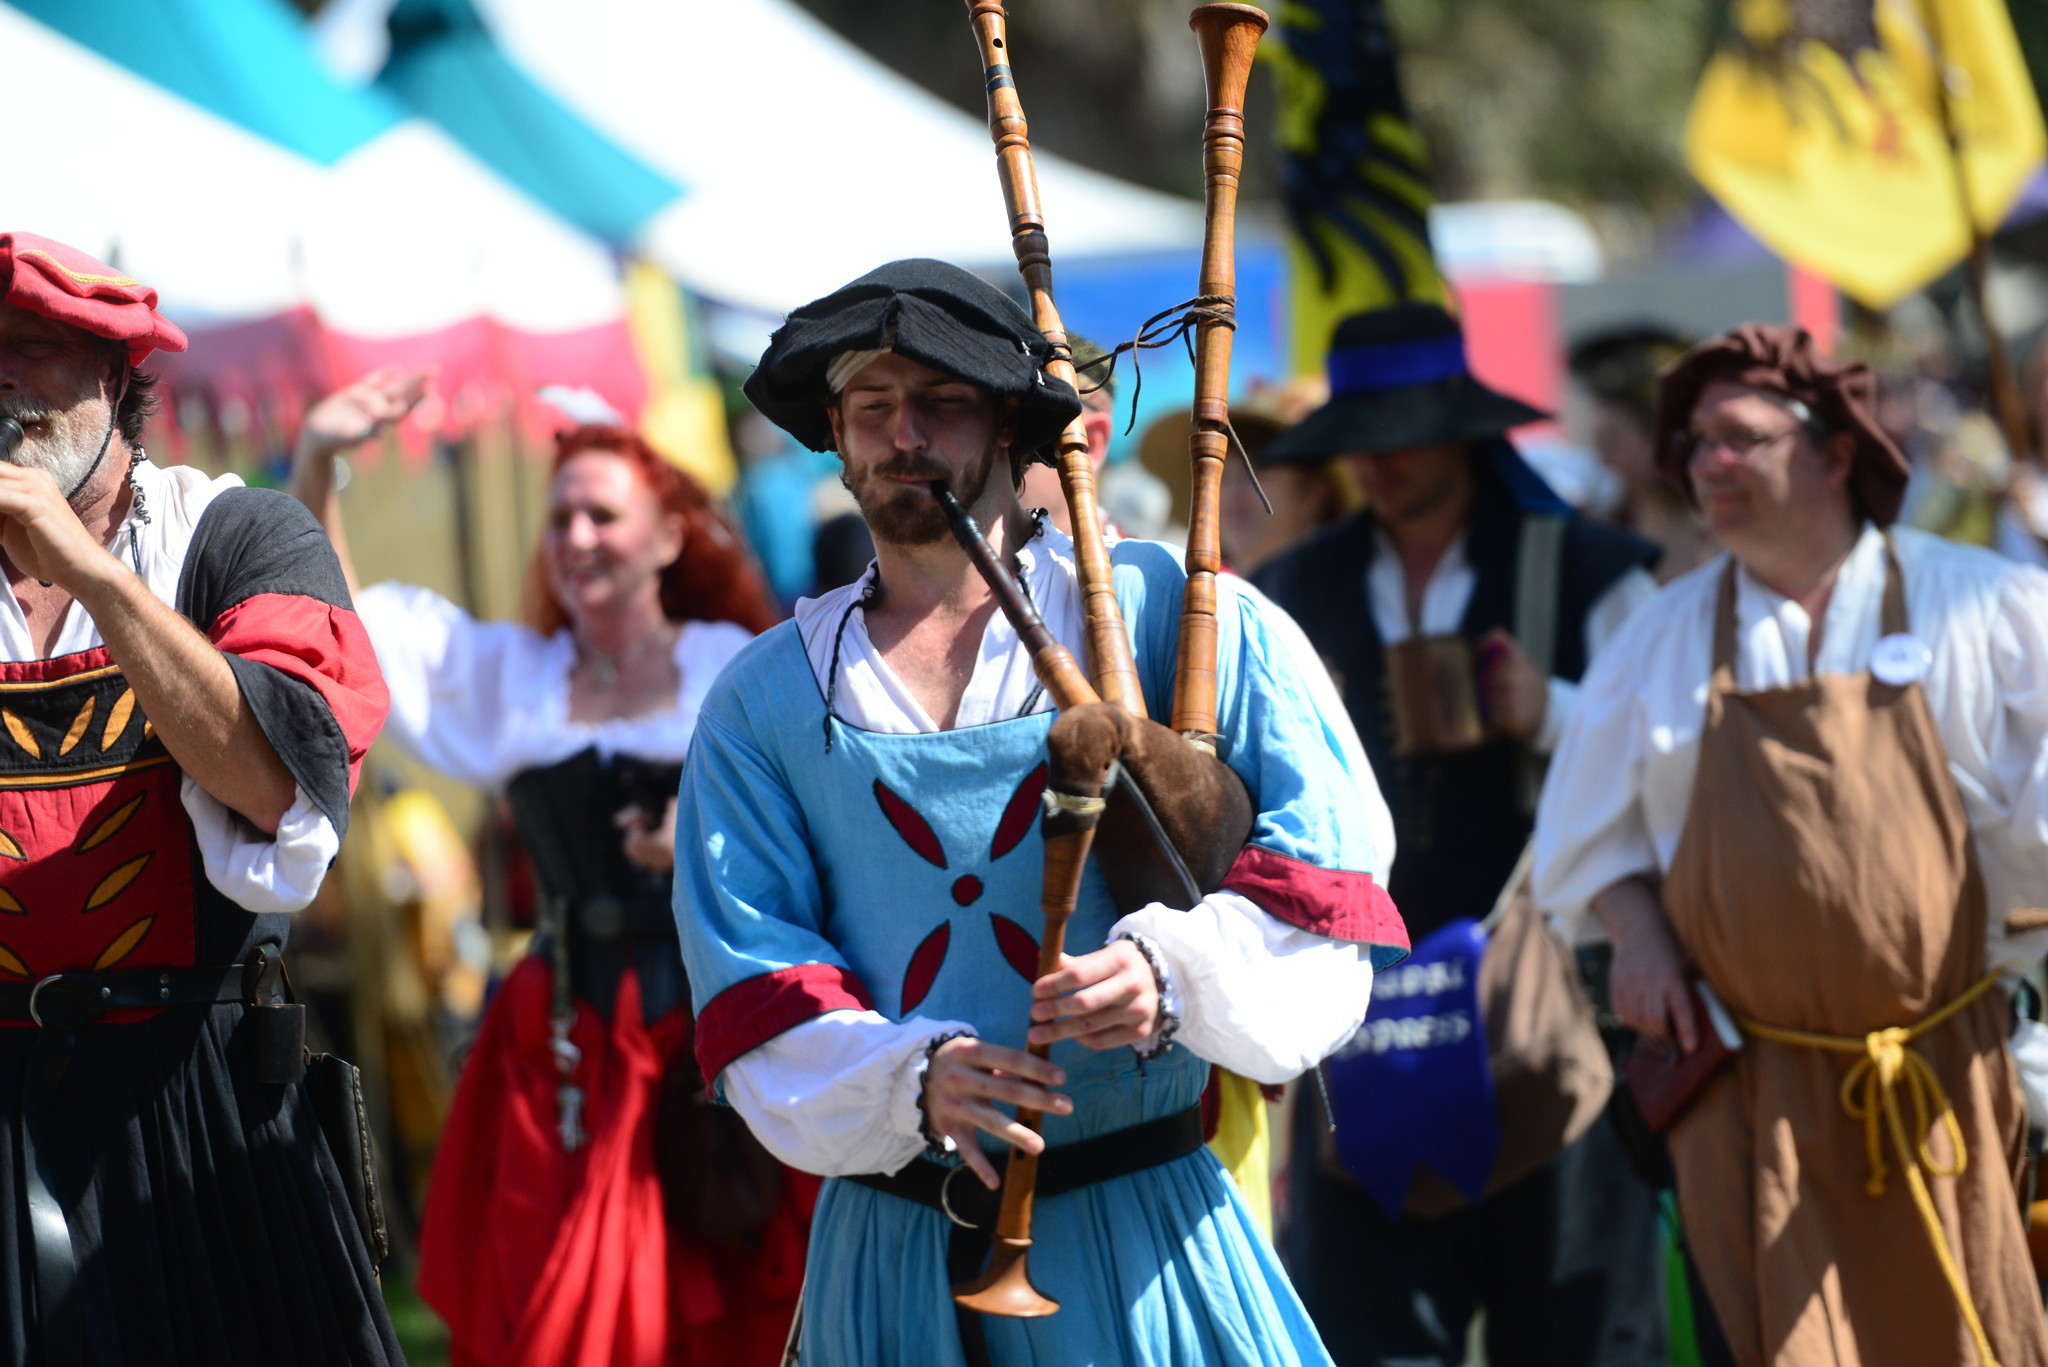 Renaissance Festival photos - Pipes in parade